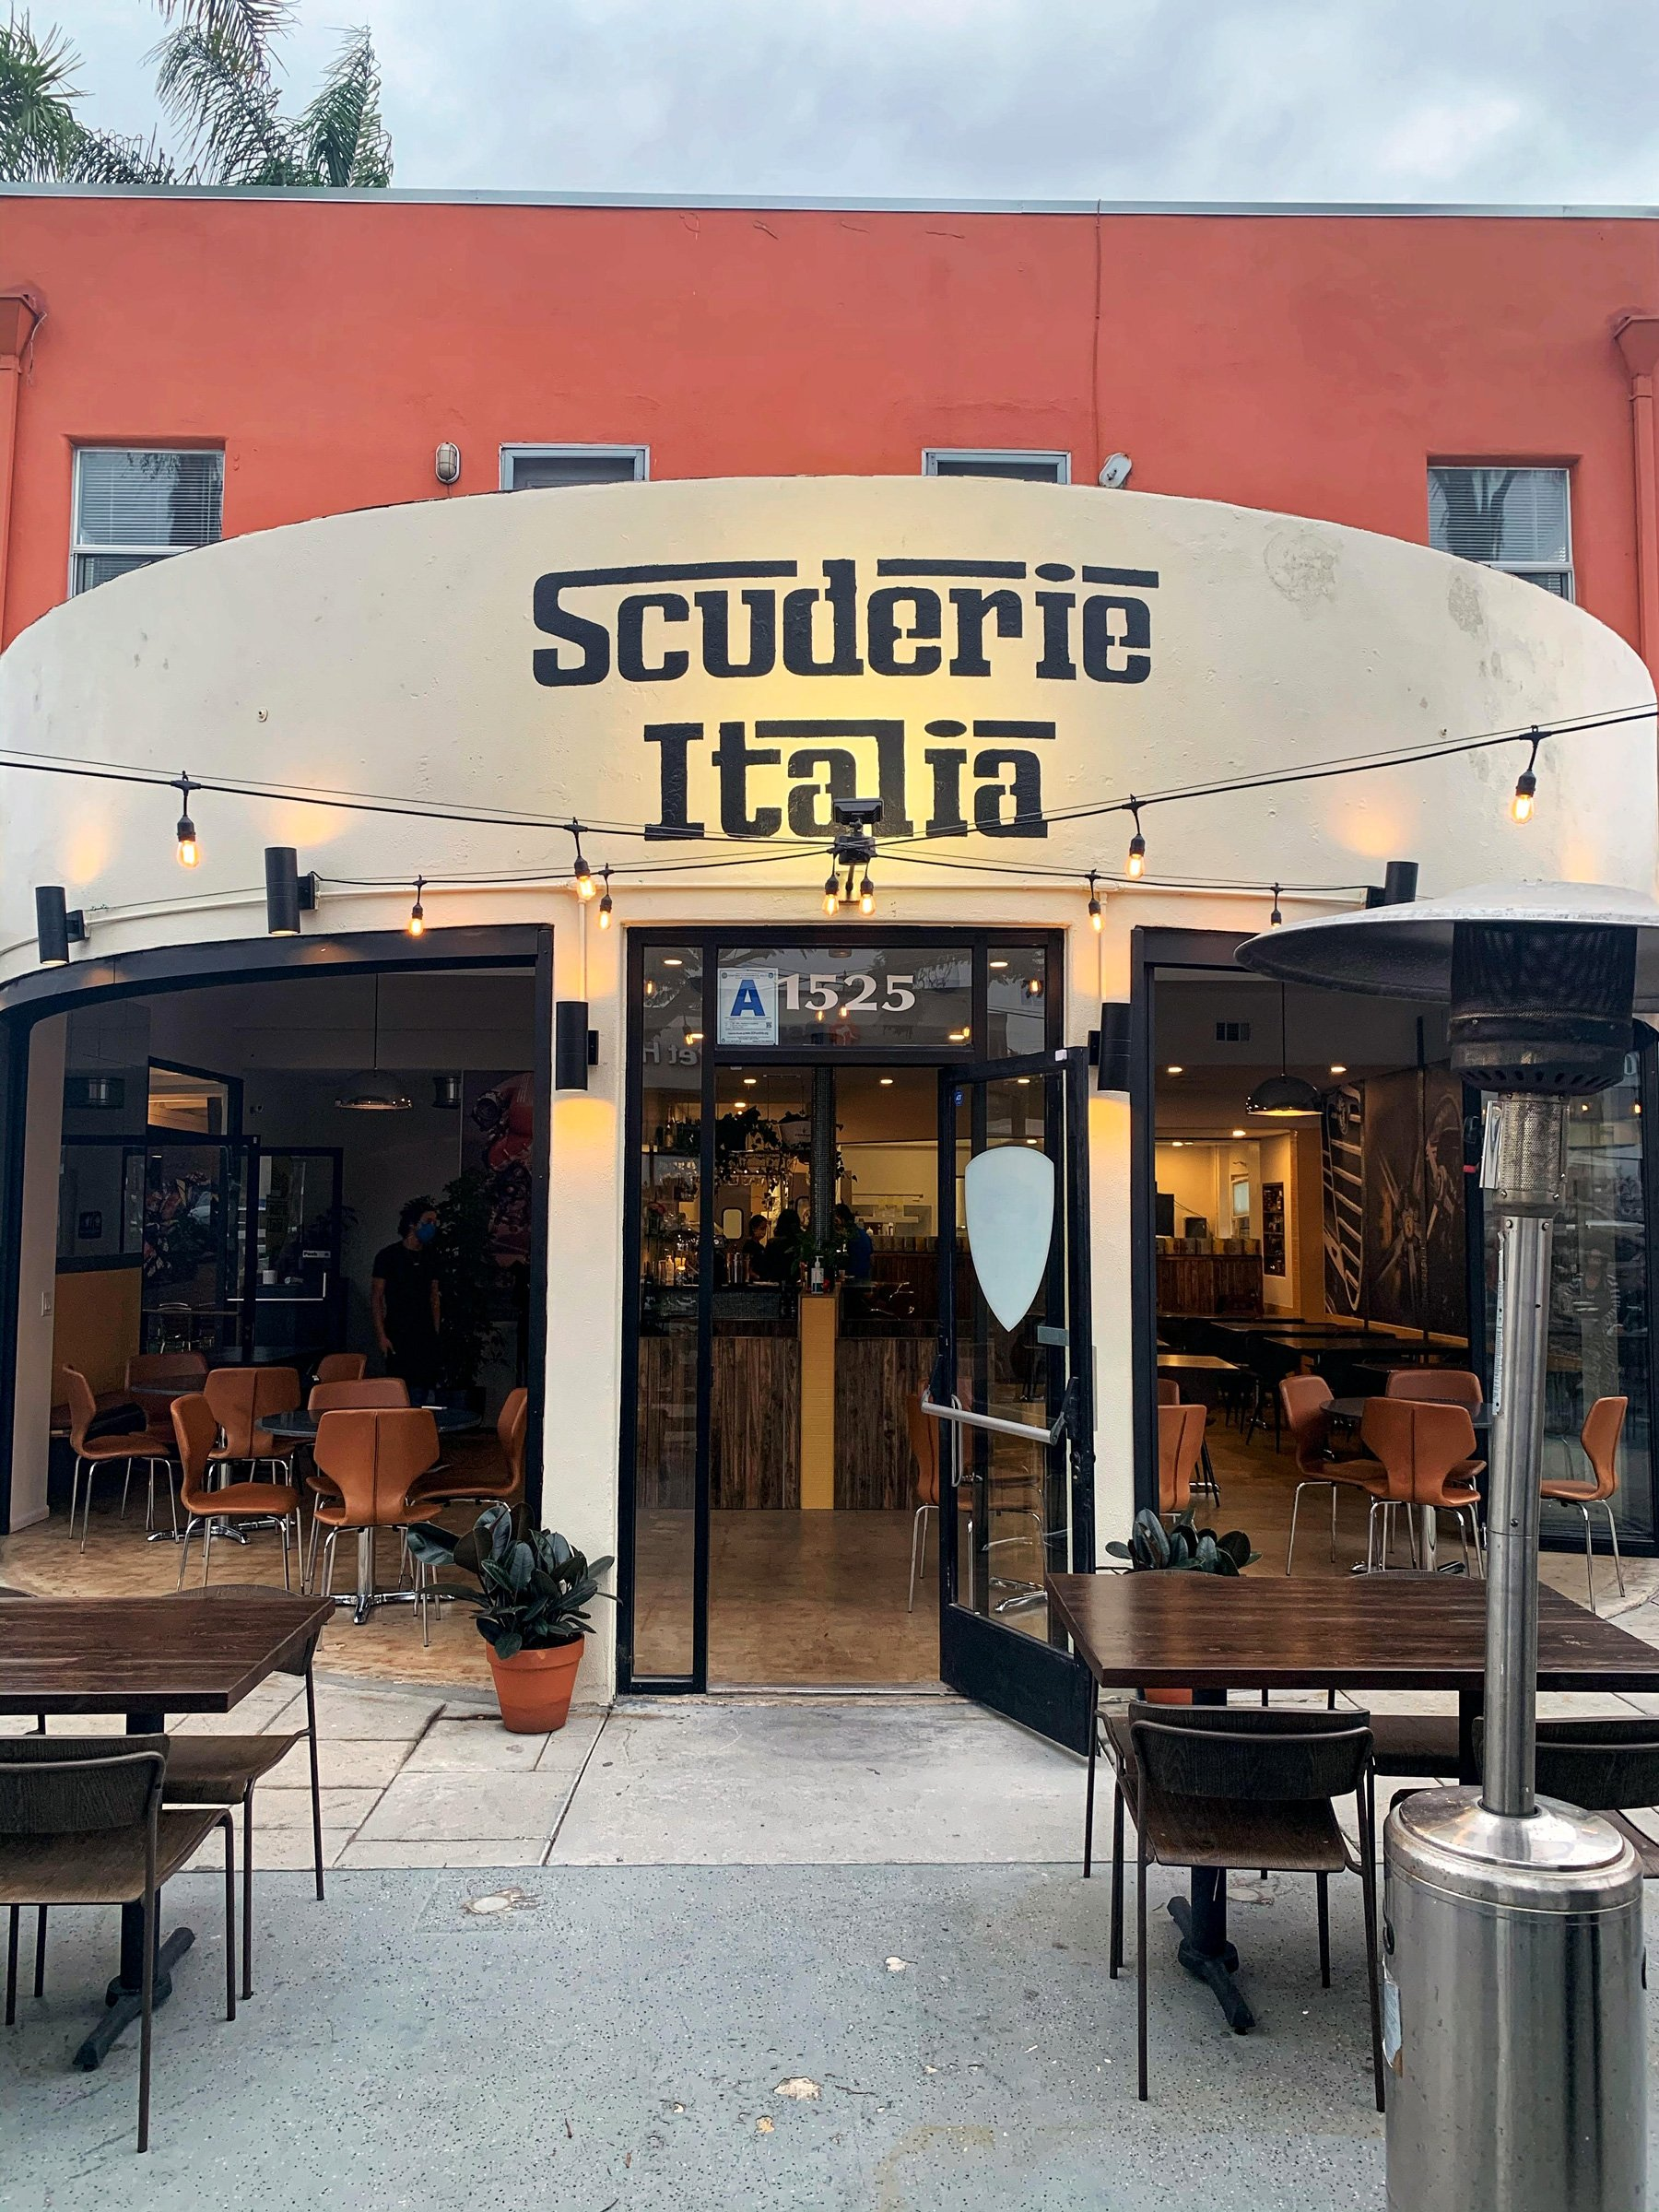 The front entrance to Scuderie Italia